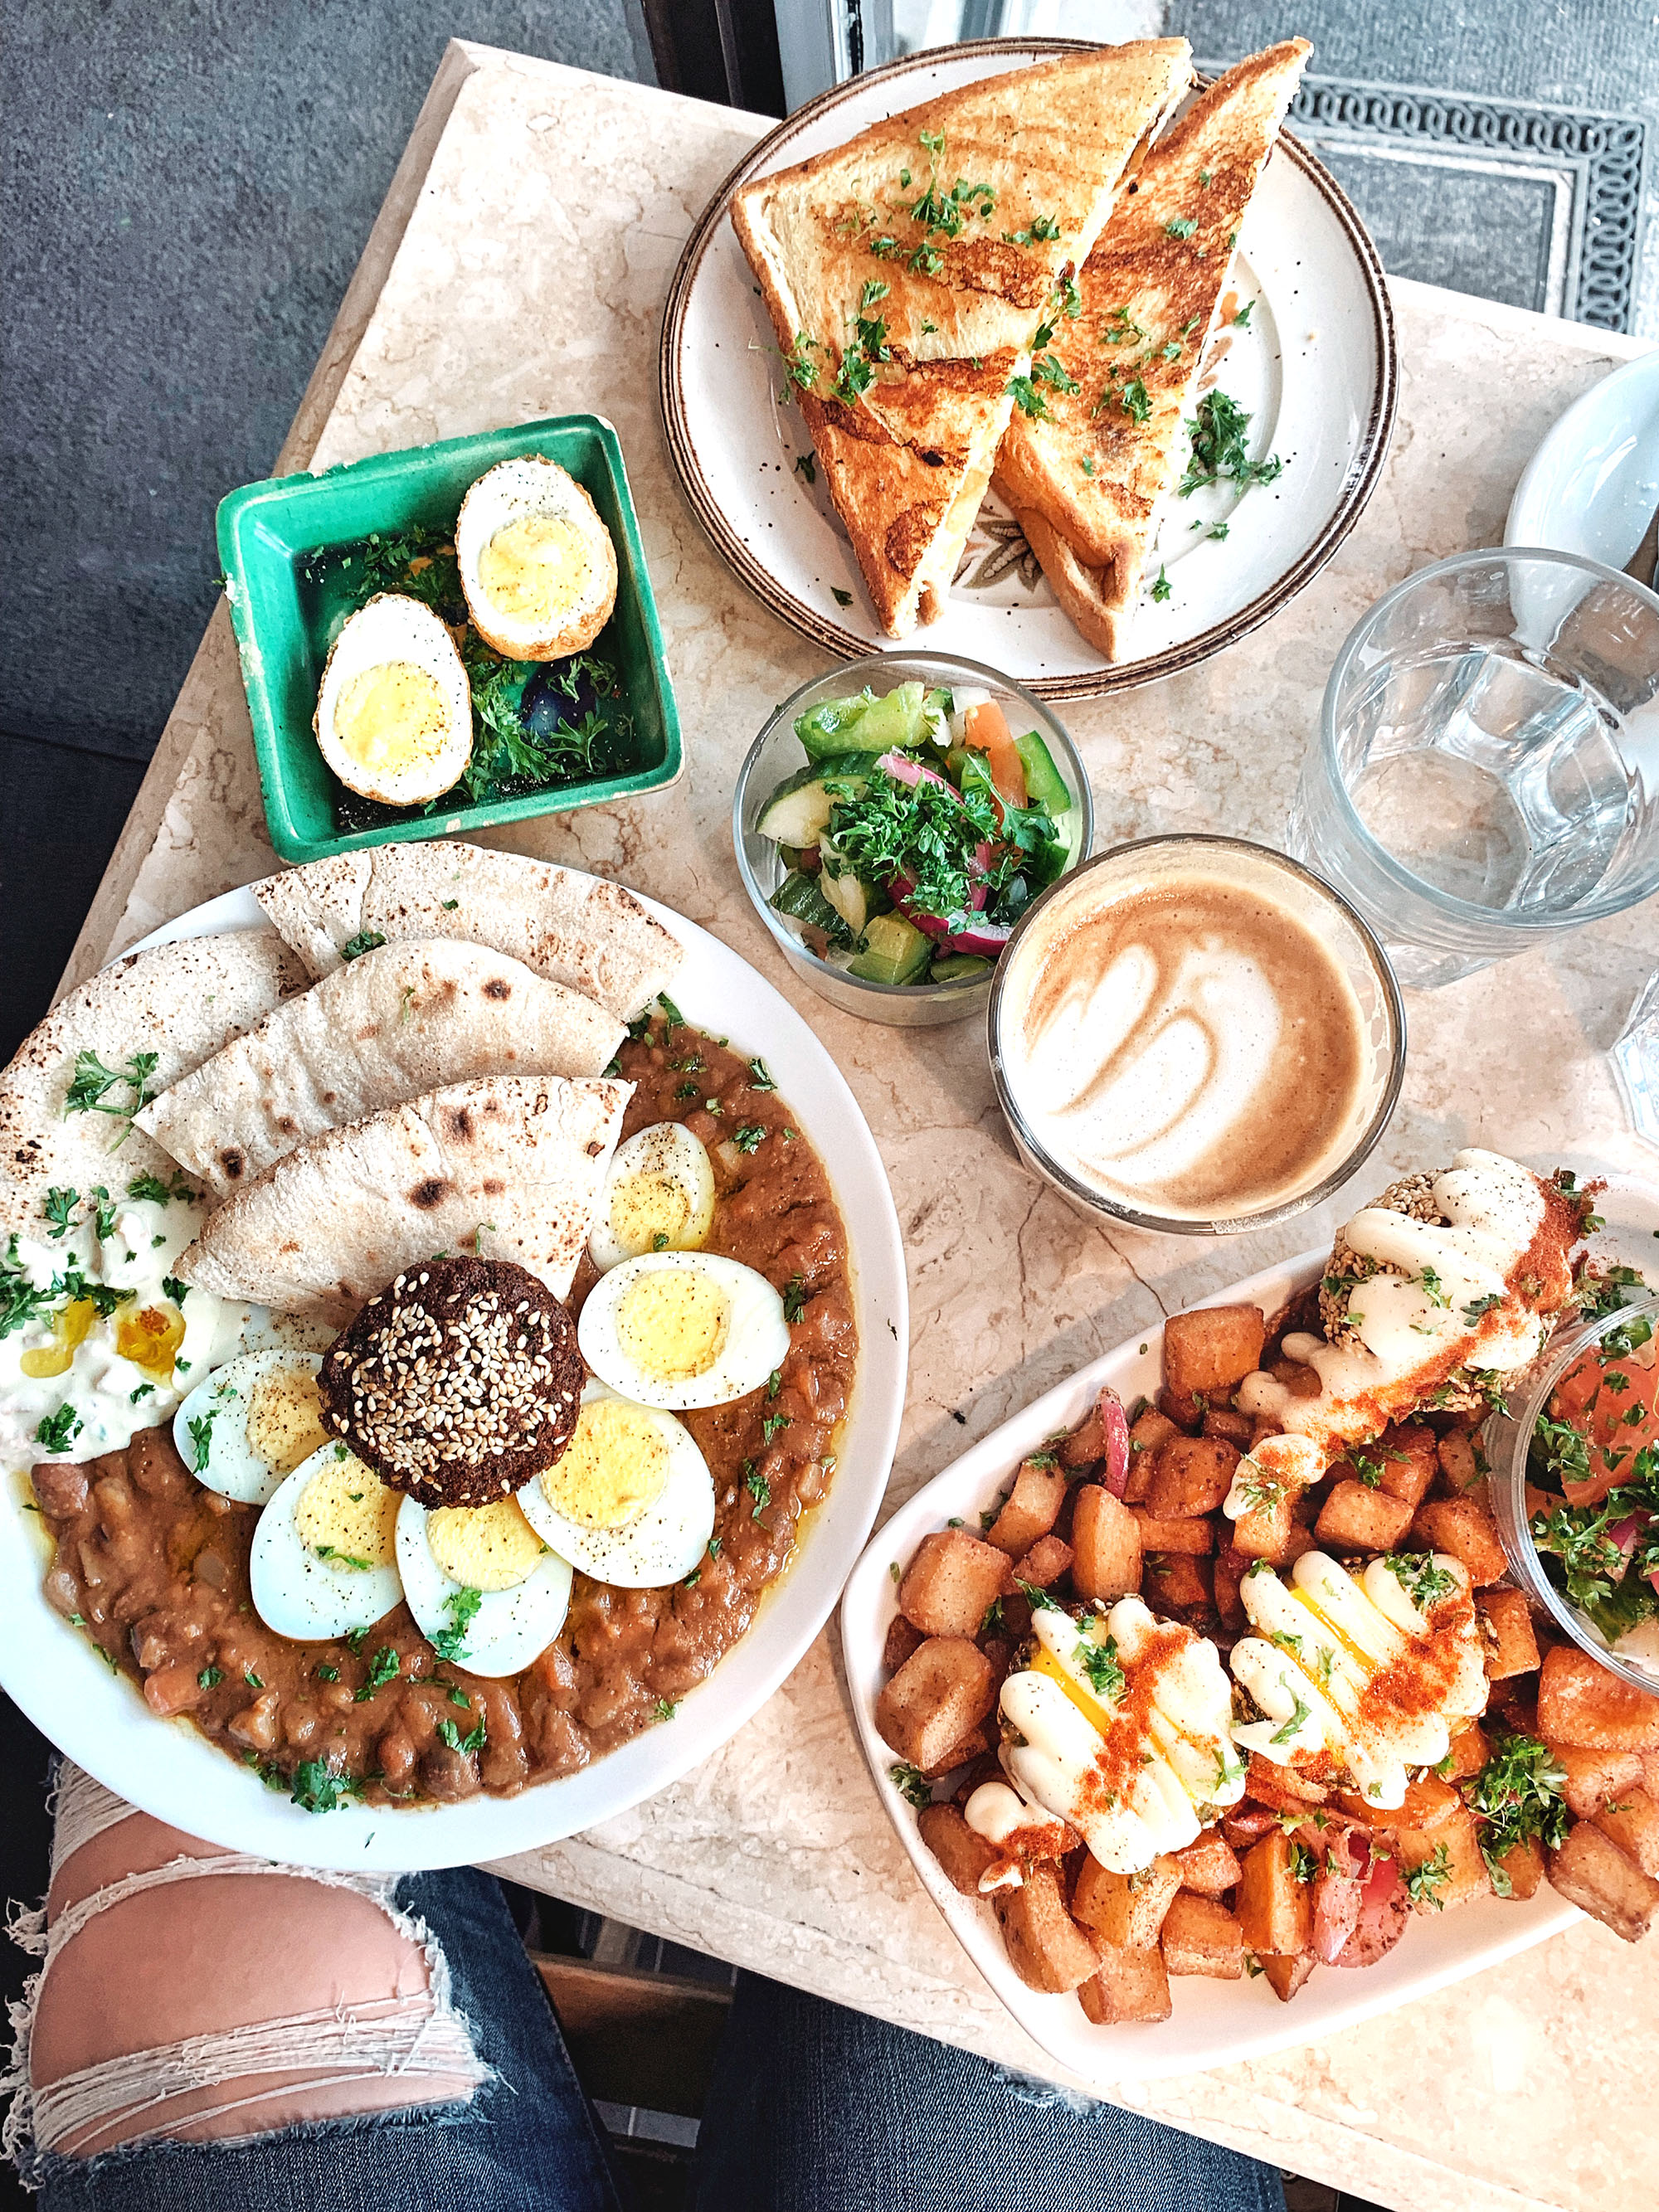 Toronto Brunch - Maha's Egyptian